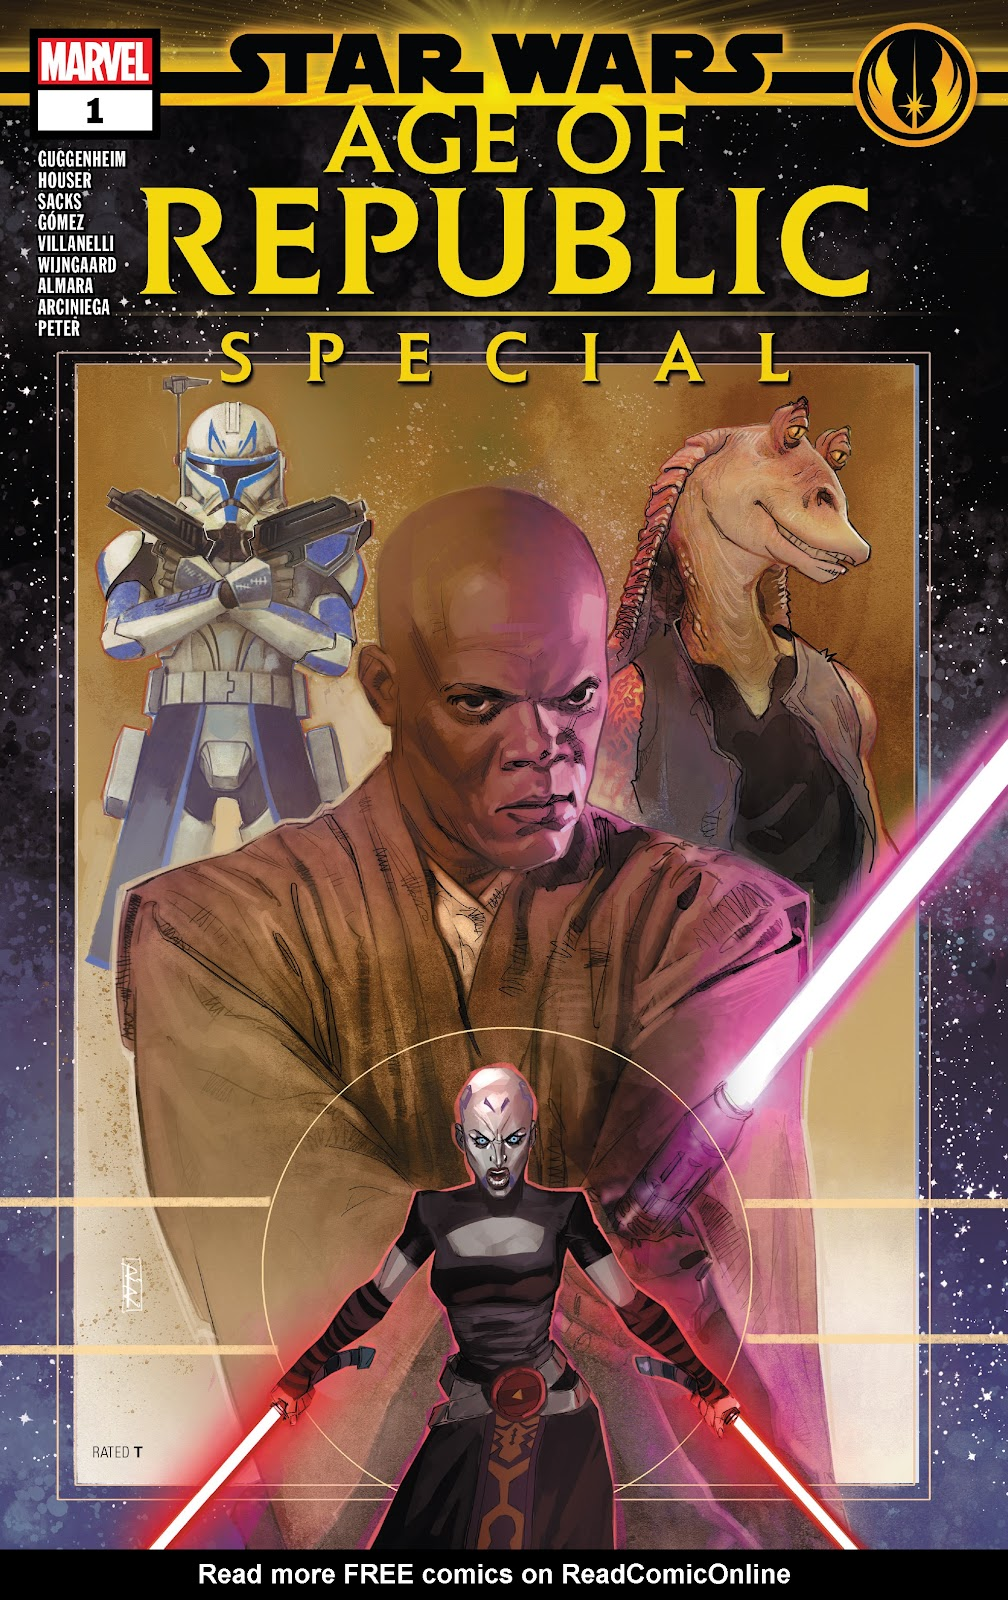 Read online Star Wars: Age of Republic Special comic -  Issue # Full - 1